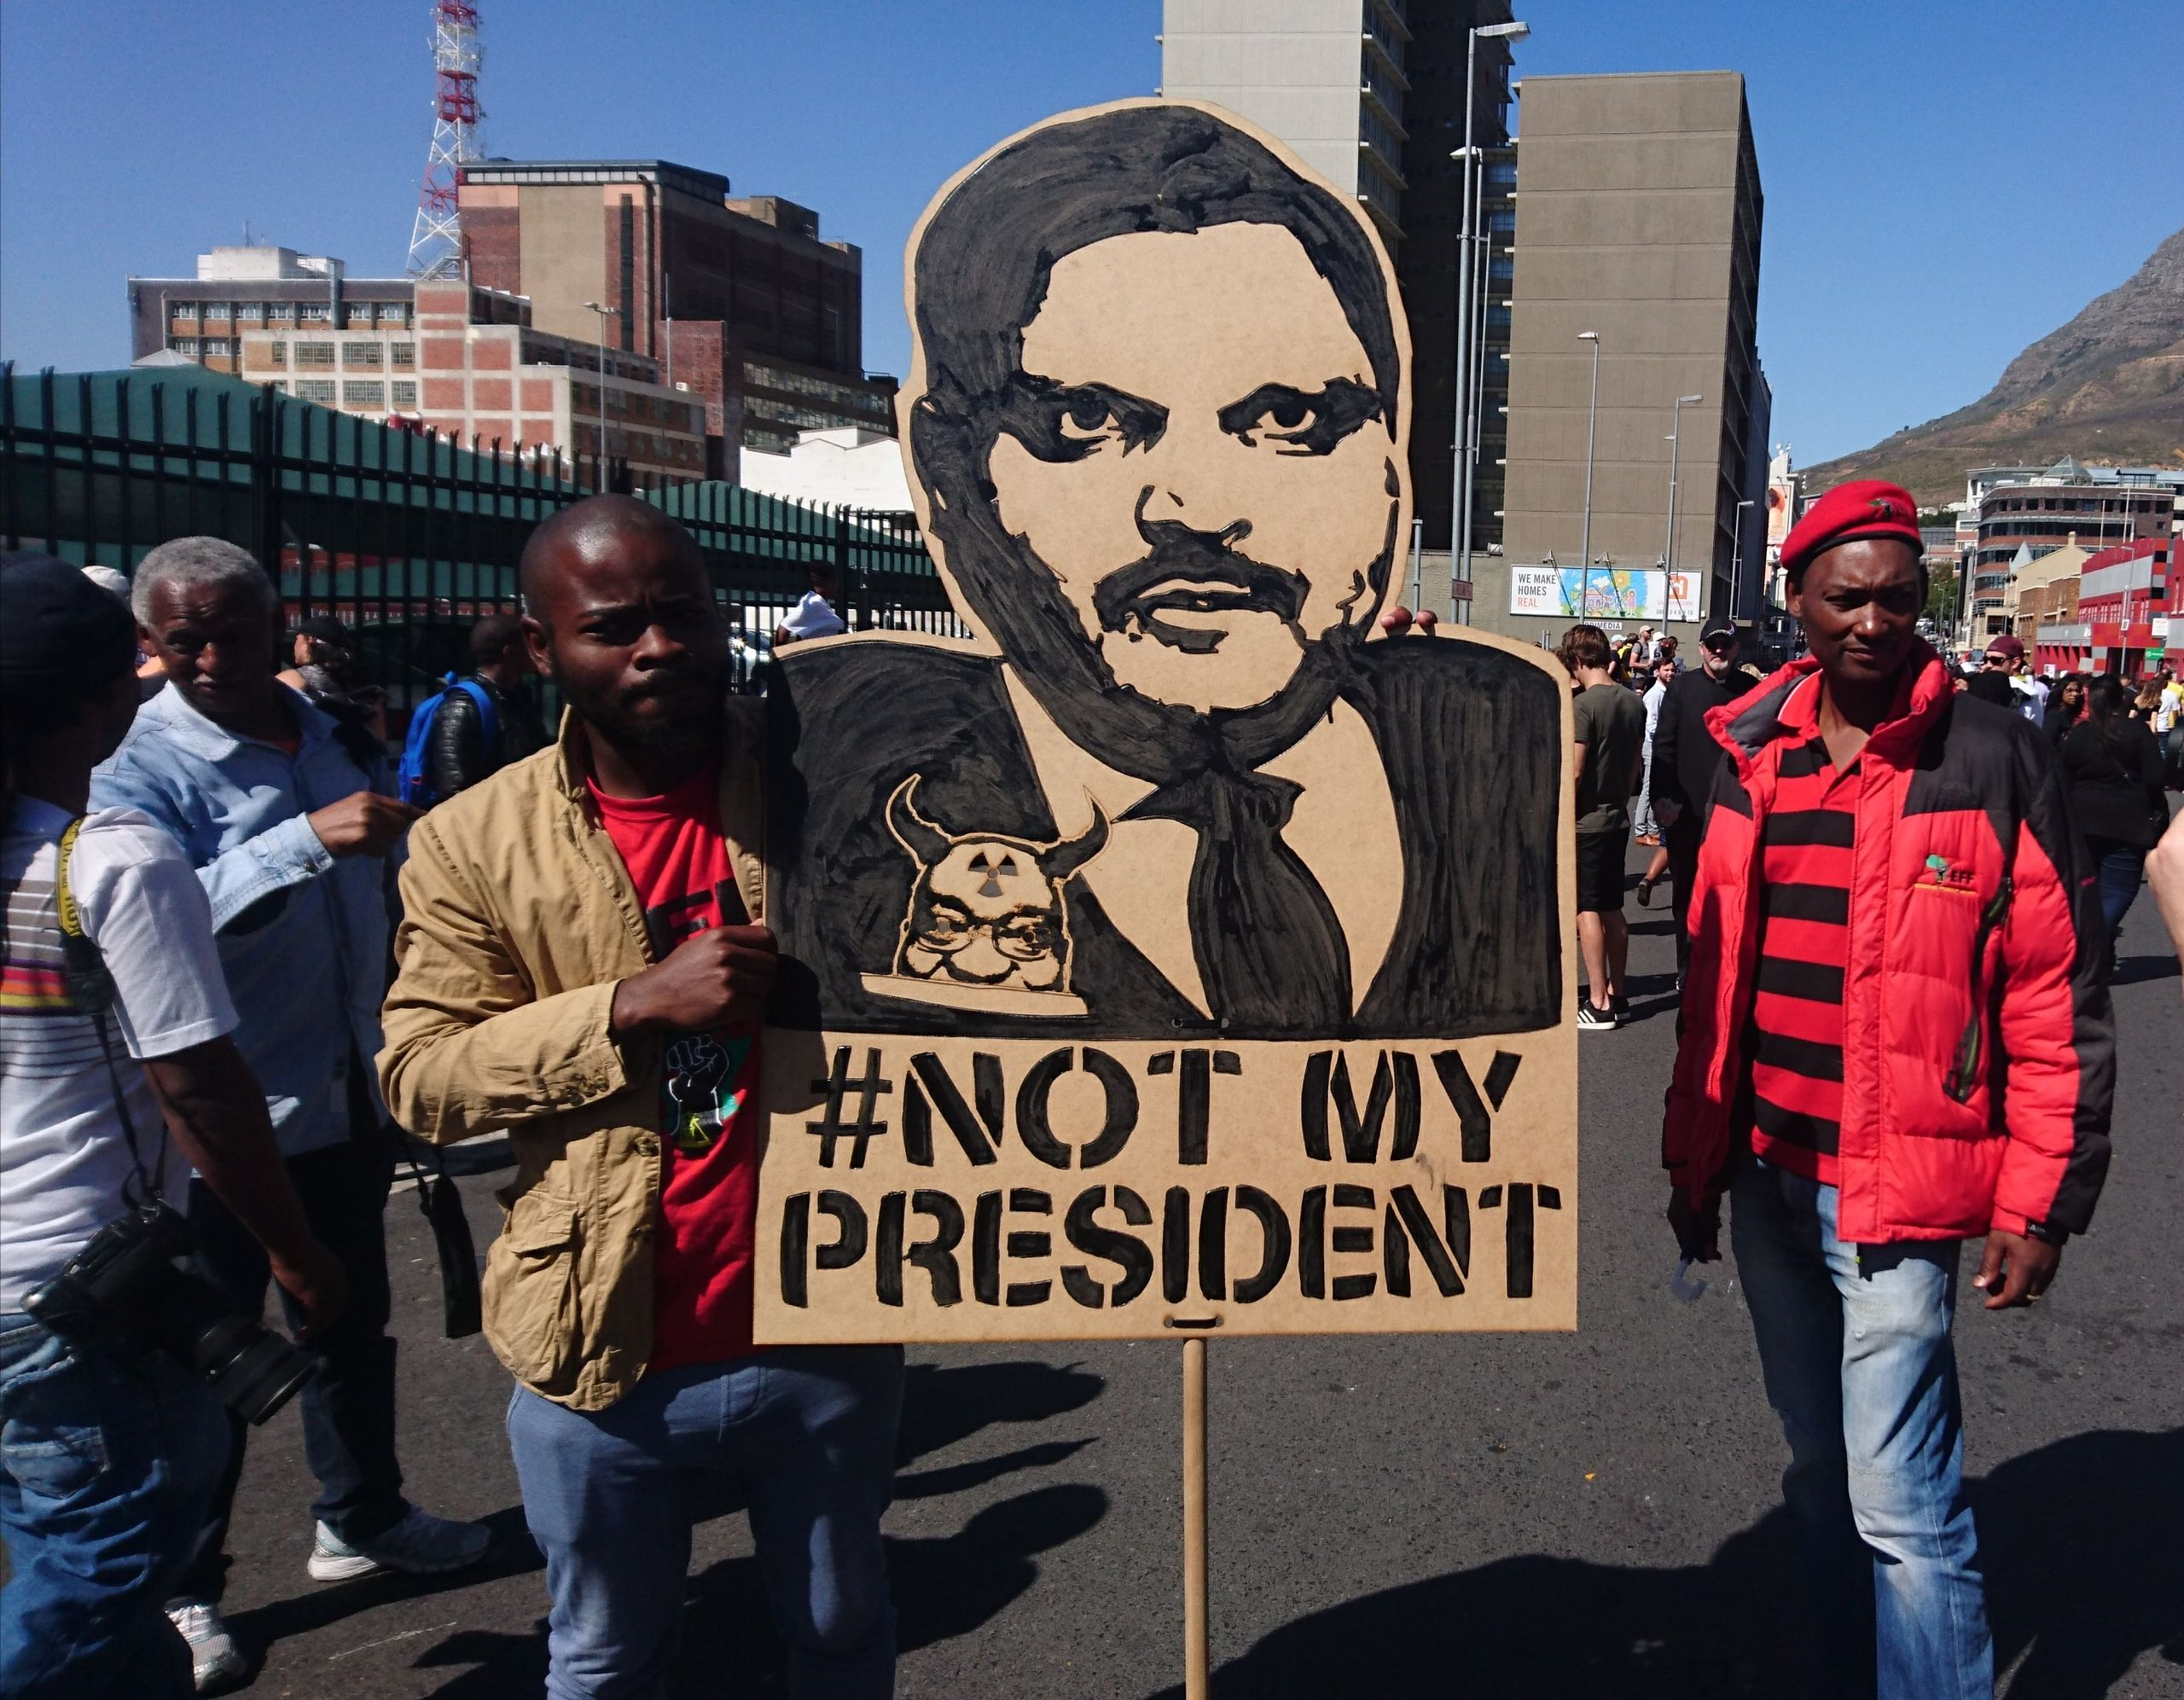 Anti-Gupta and Zuma Protesters in Cape Town (Photo: Discott CC BY-SA 4.0)